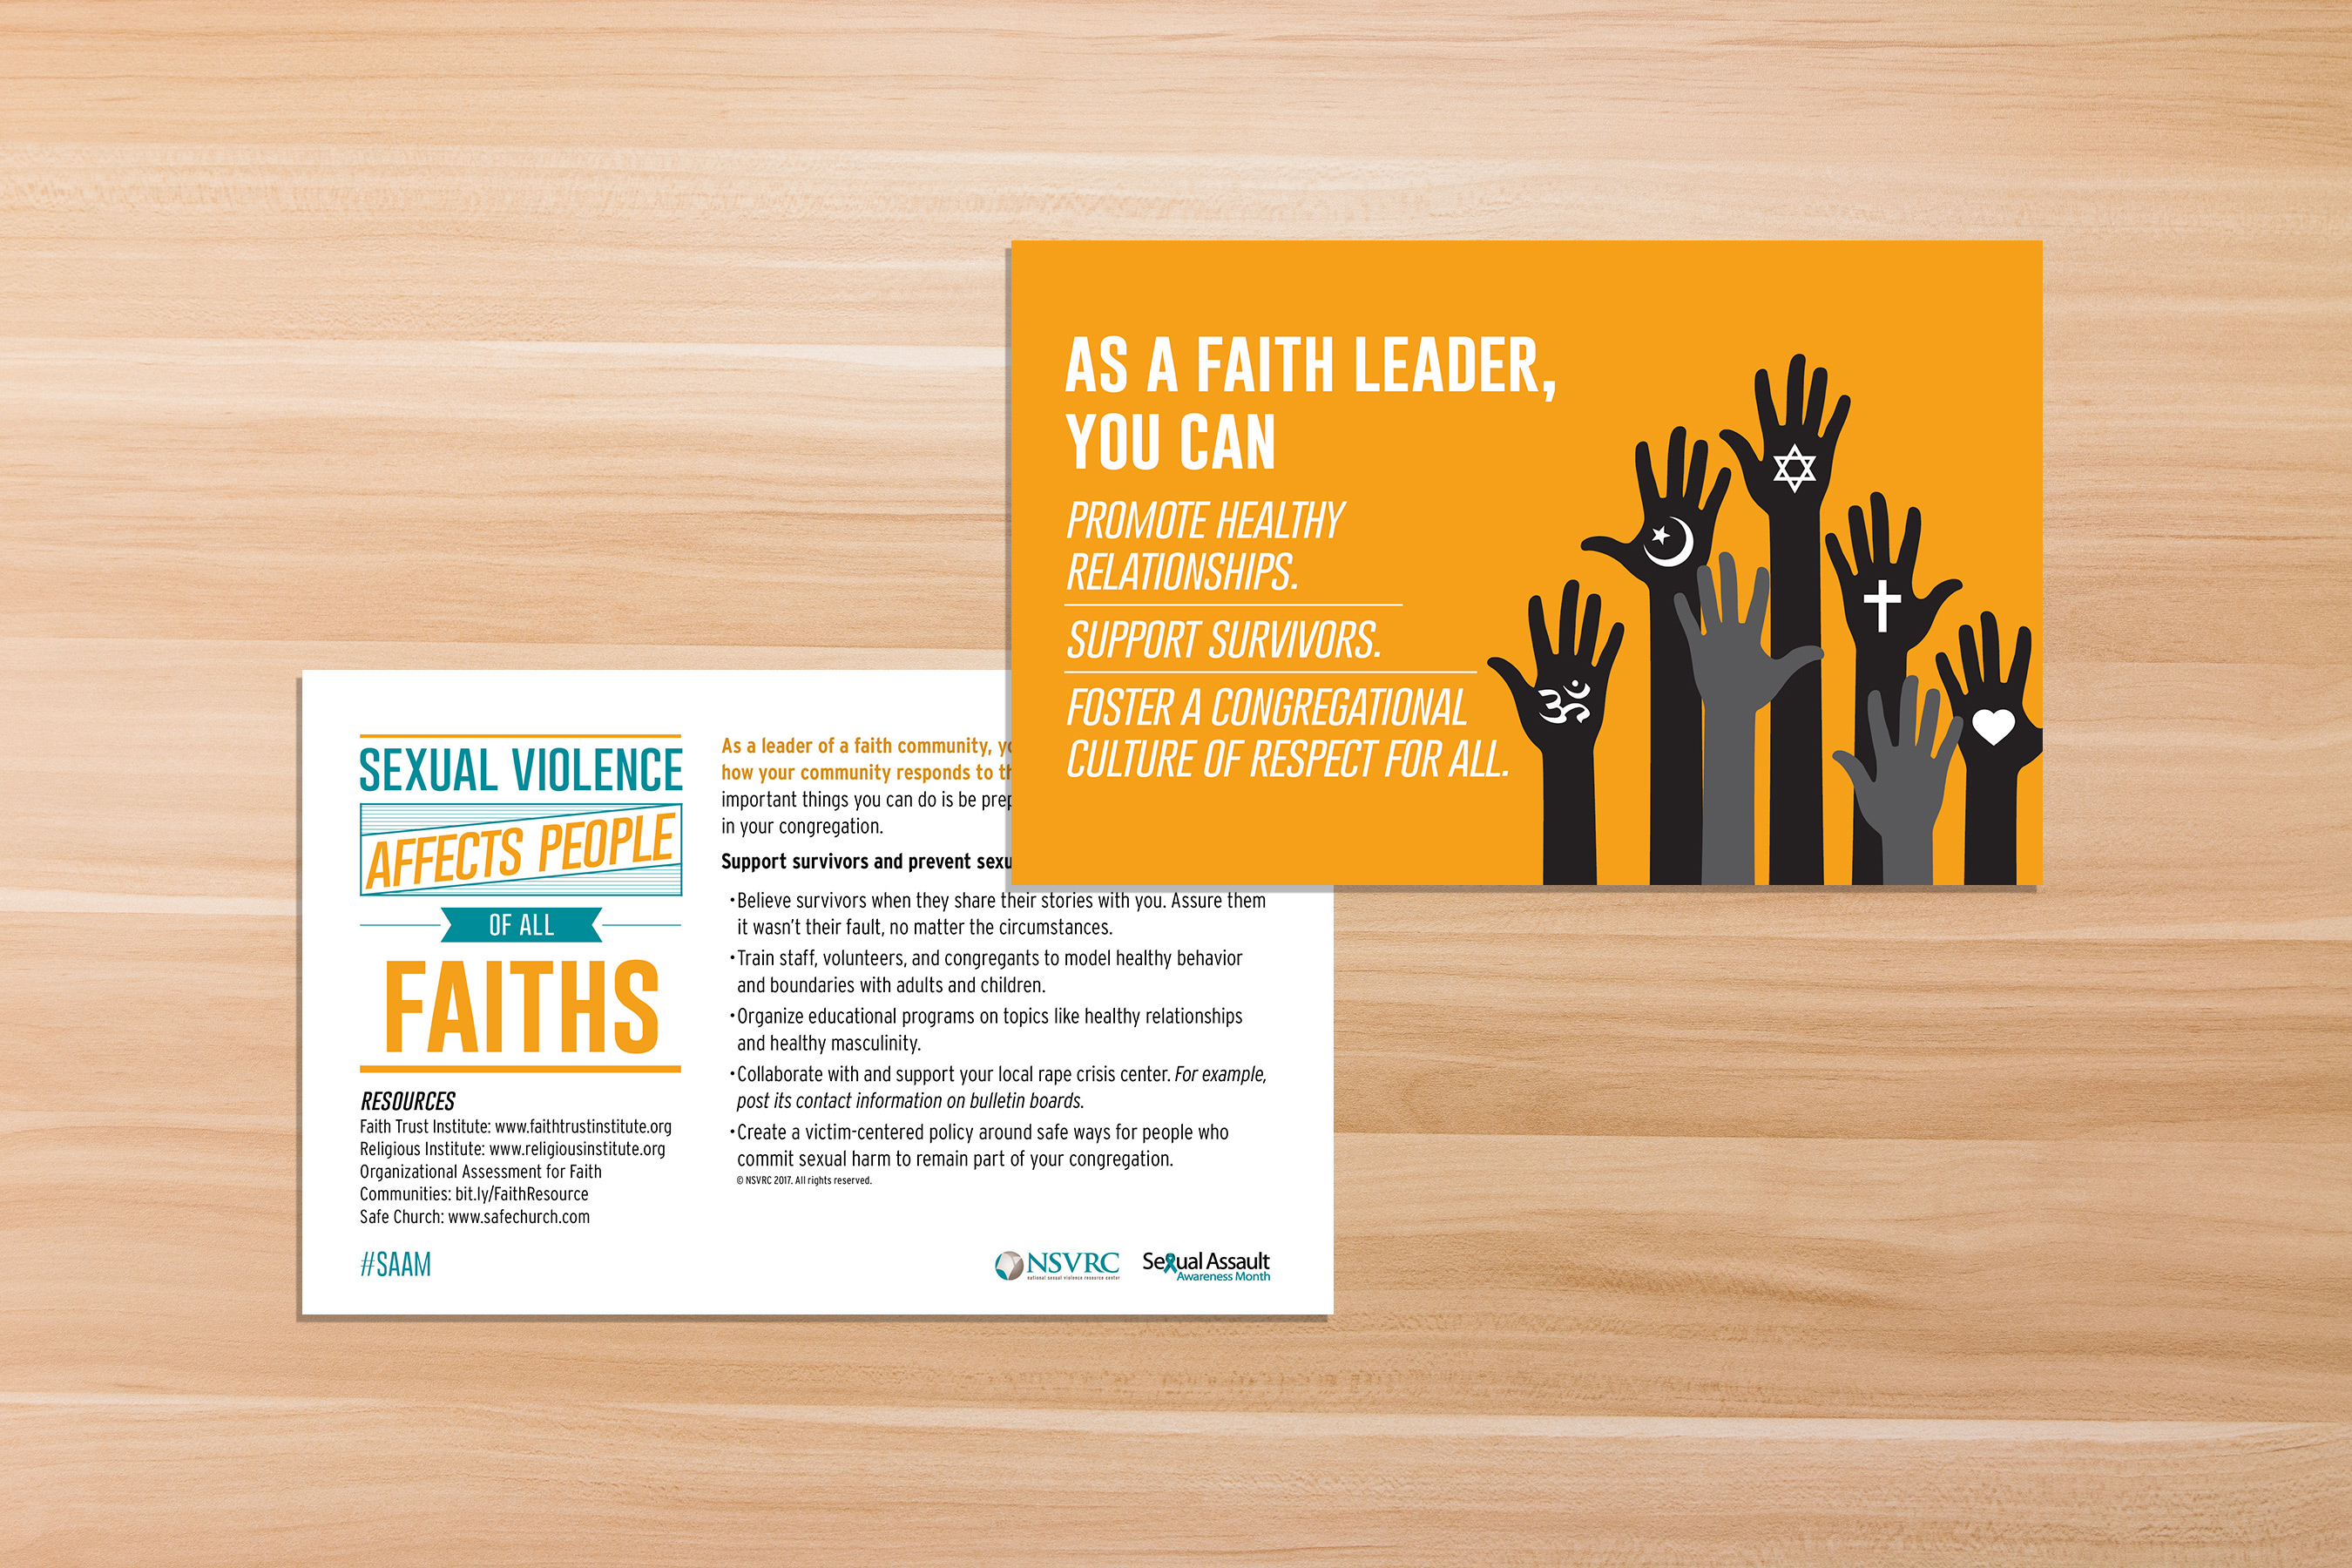 SP-17-08_Faith Leaders postcard.jpg